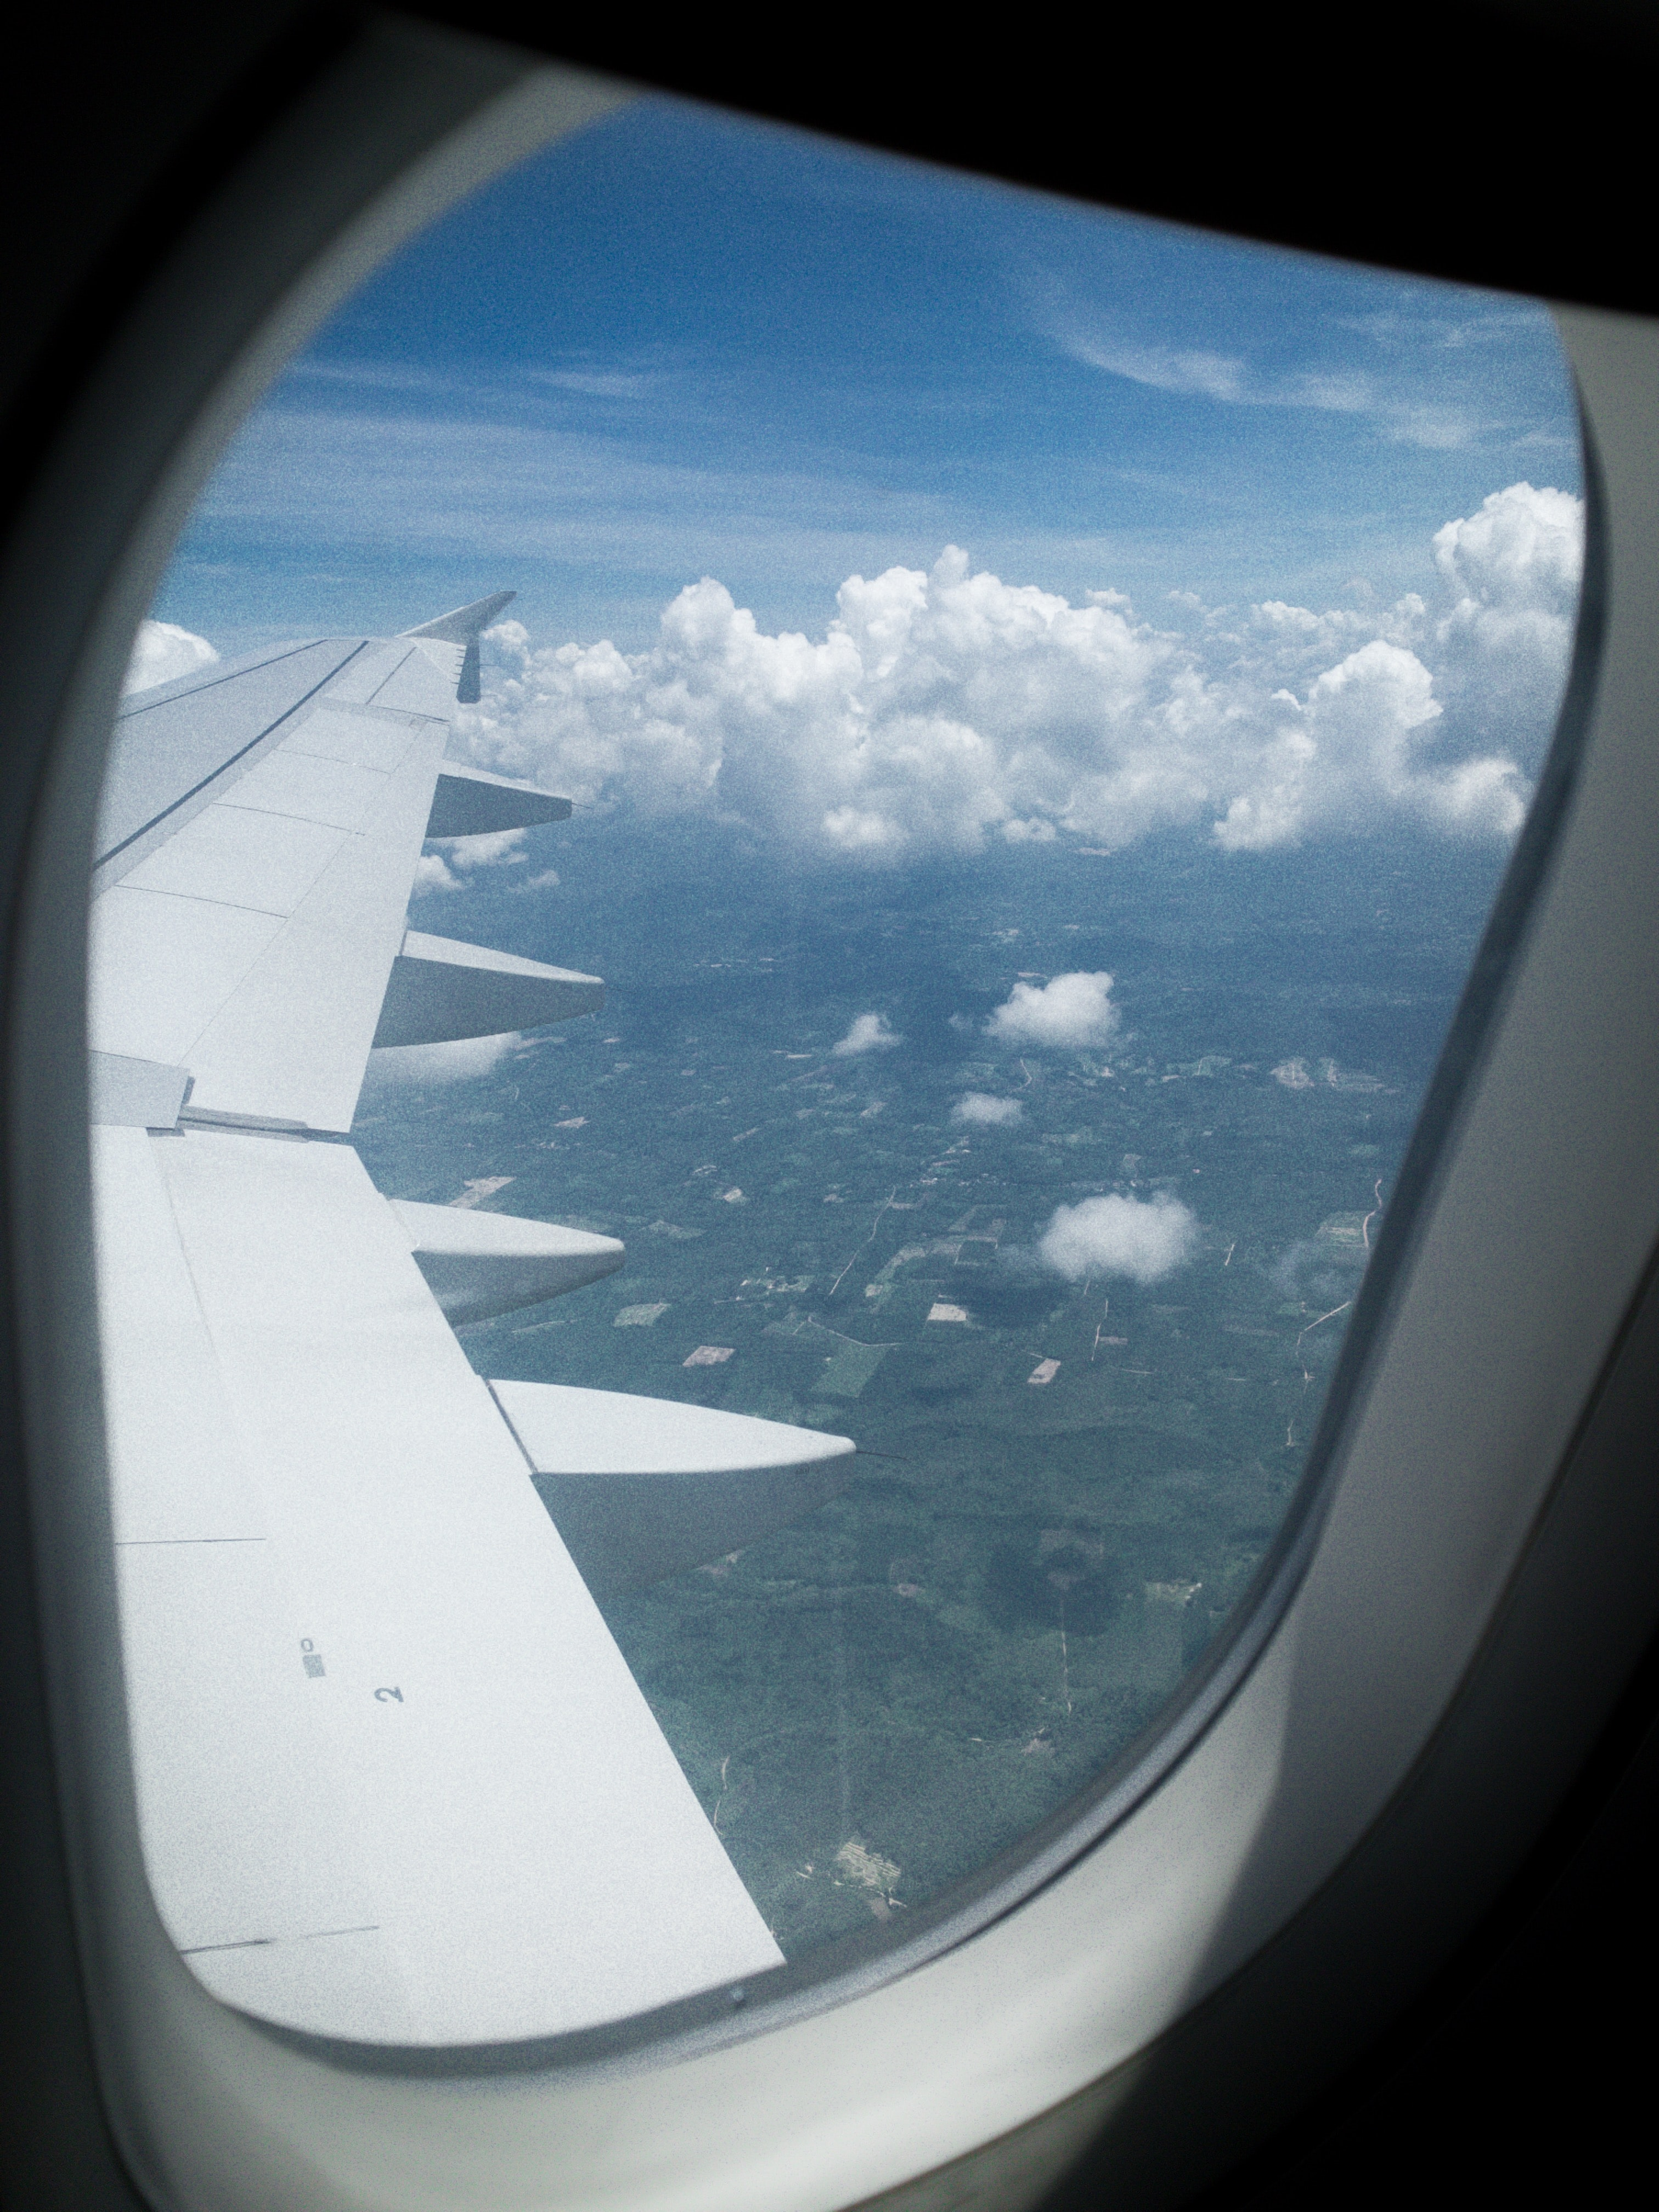 photo of airplane wing in flight